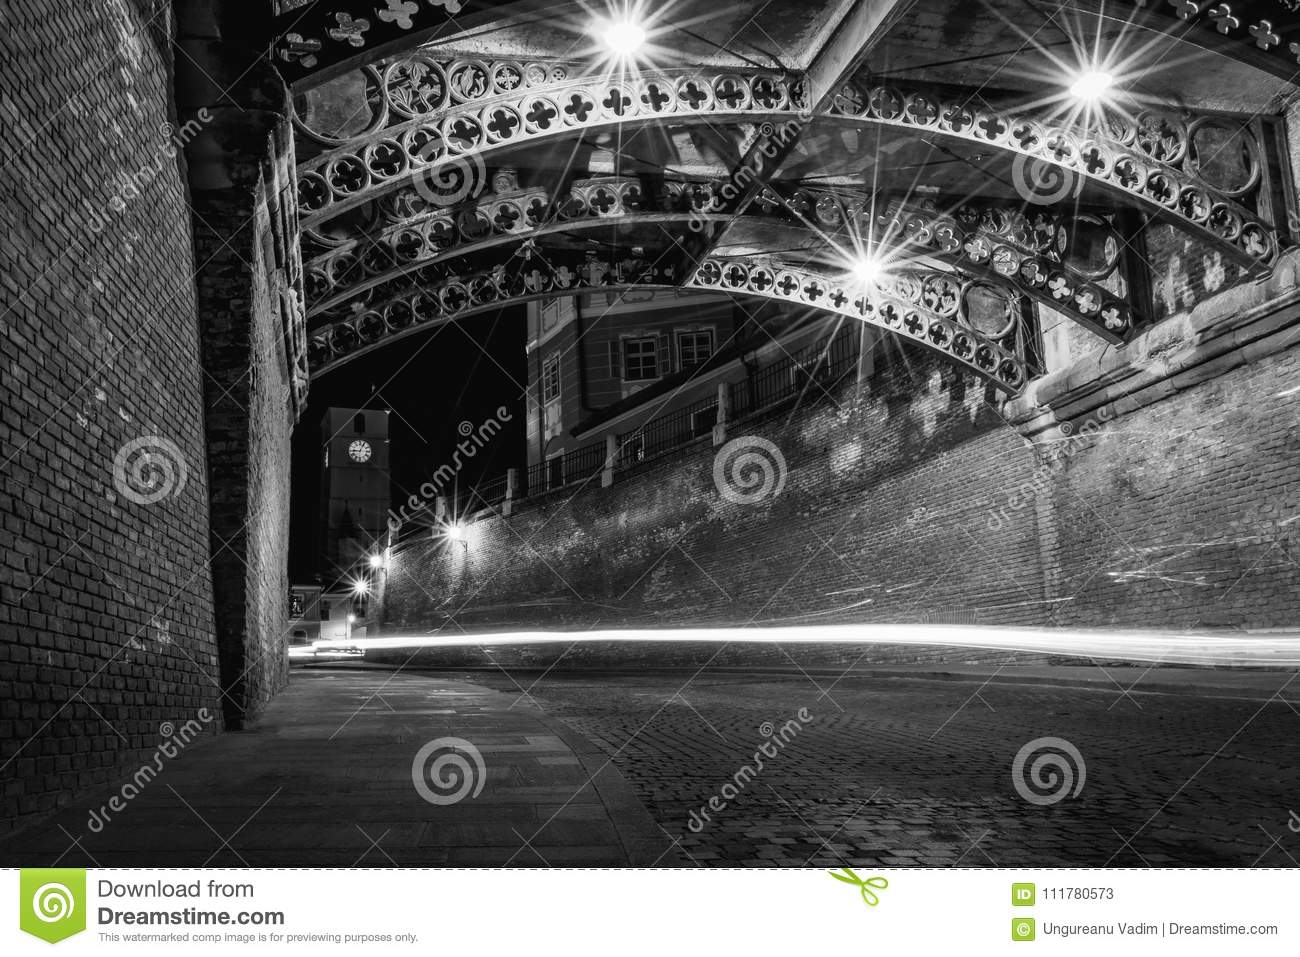 Sibiu at night below The Bridge of Liars and with the Council Tower in background